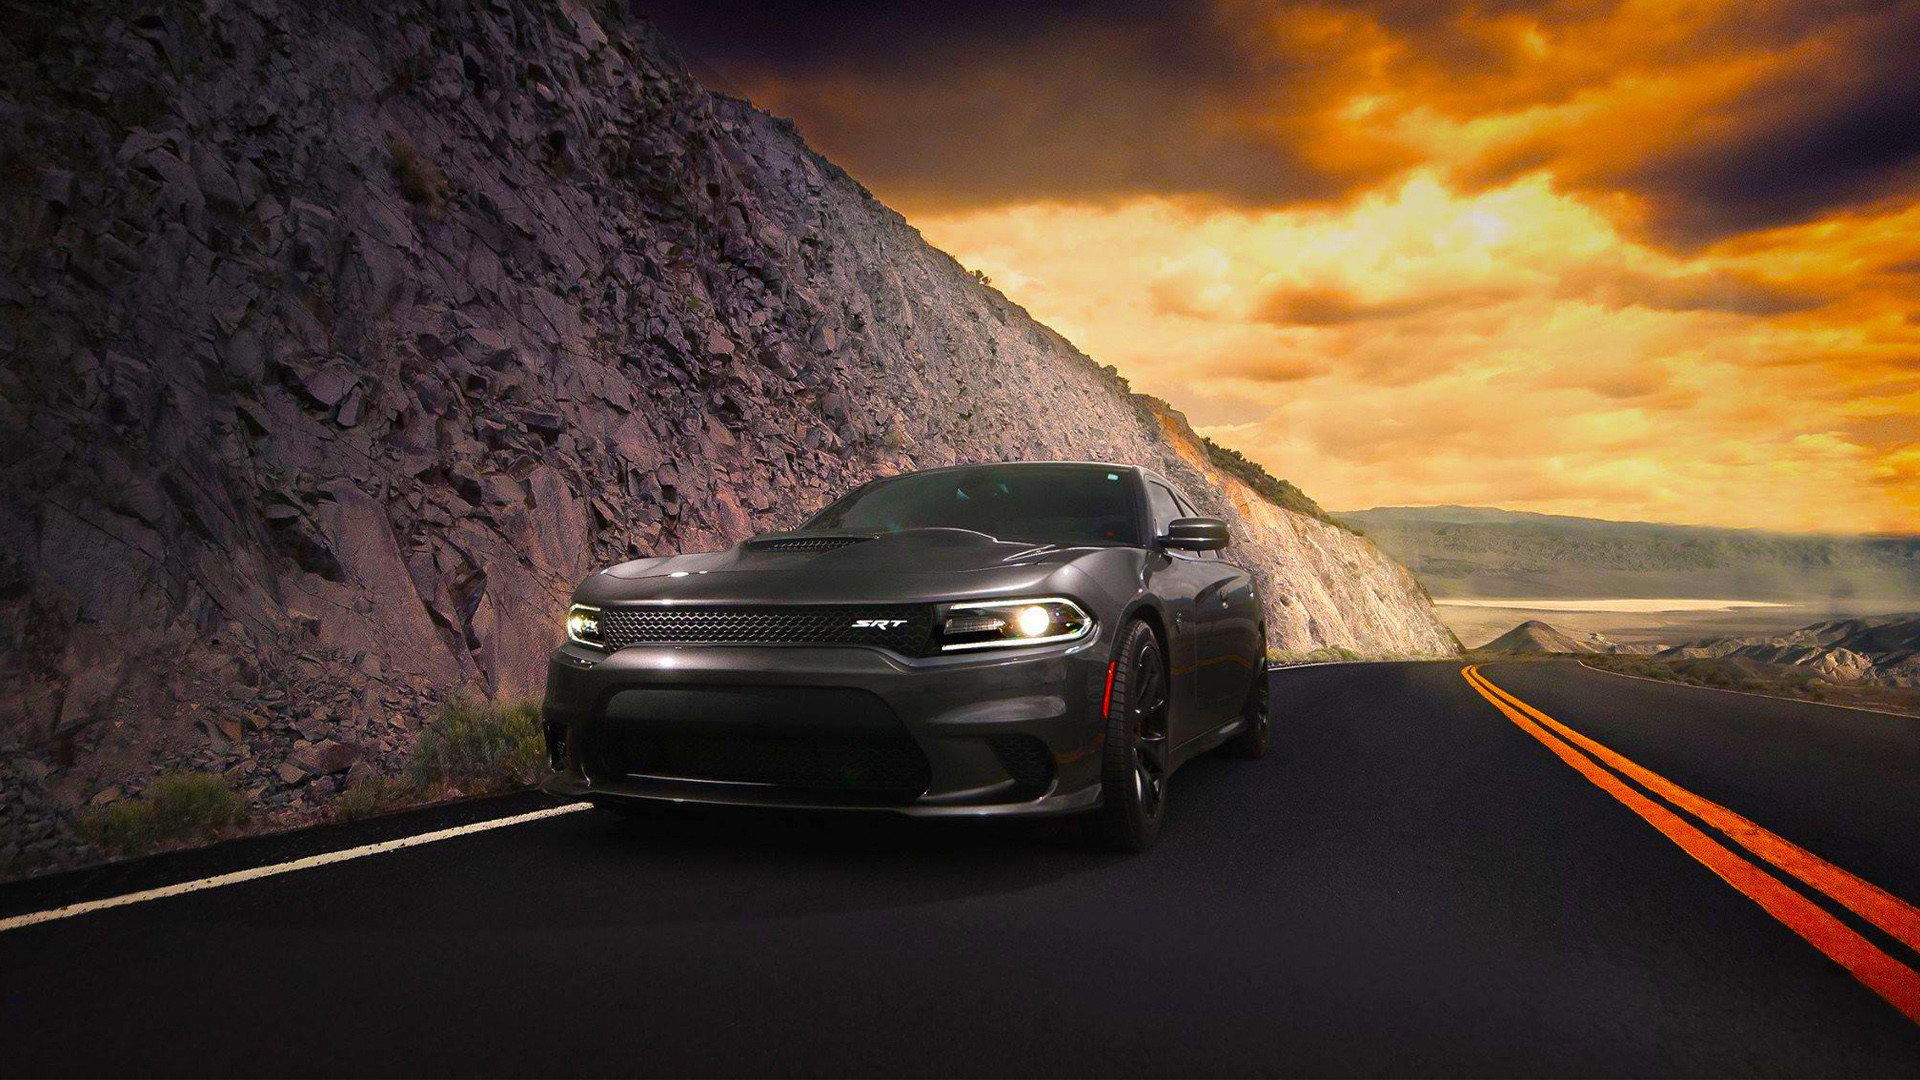 1920x1080 Dodge Charger SRT Hellcat 2015 Car HD Wallpapers | HD Wallpapers